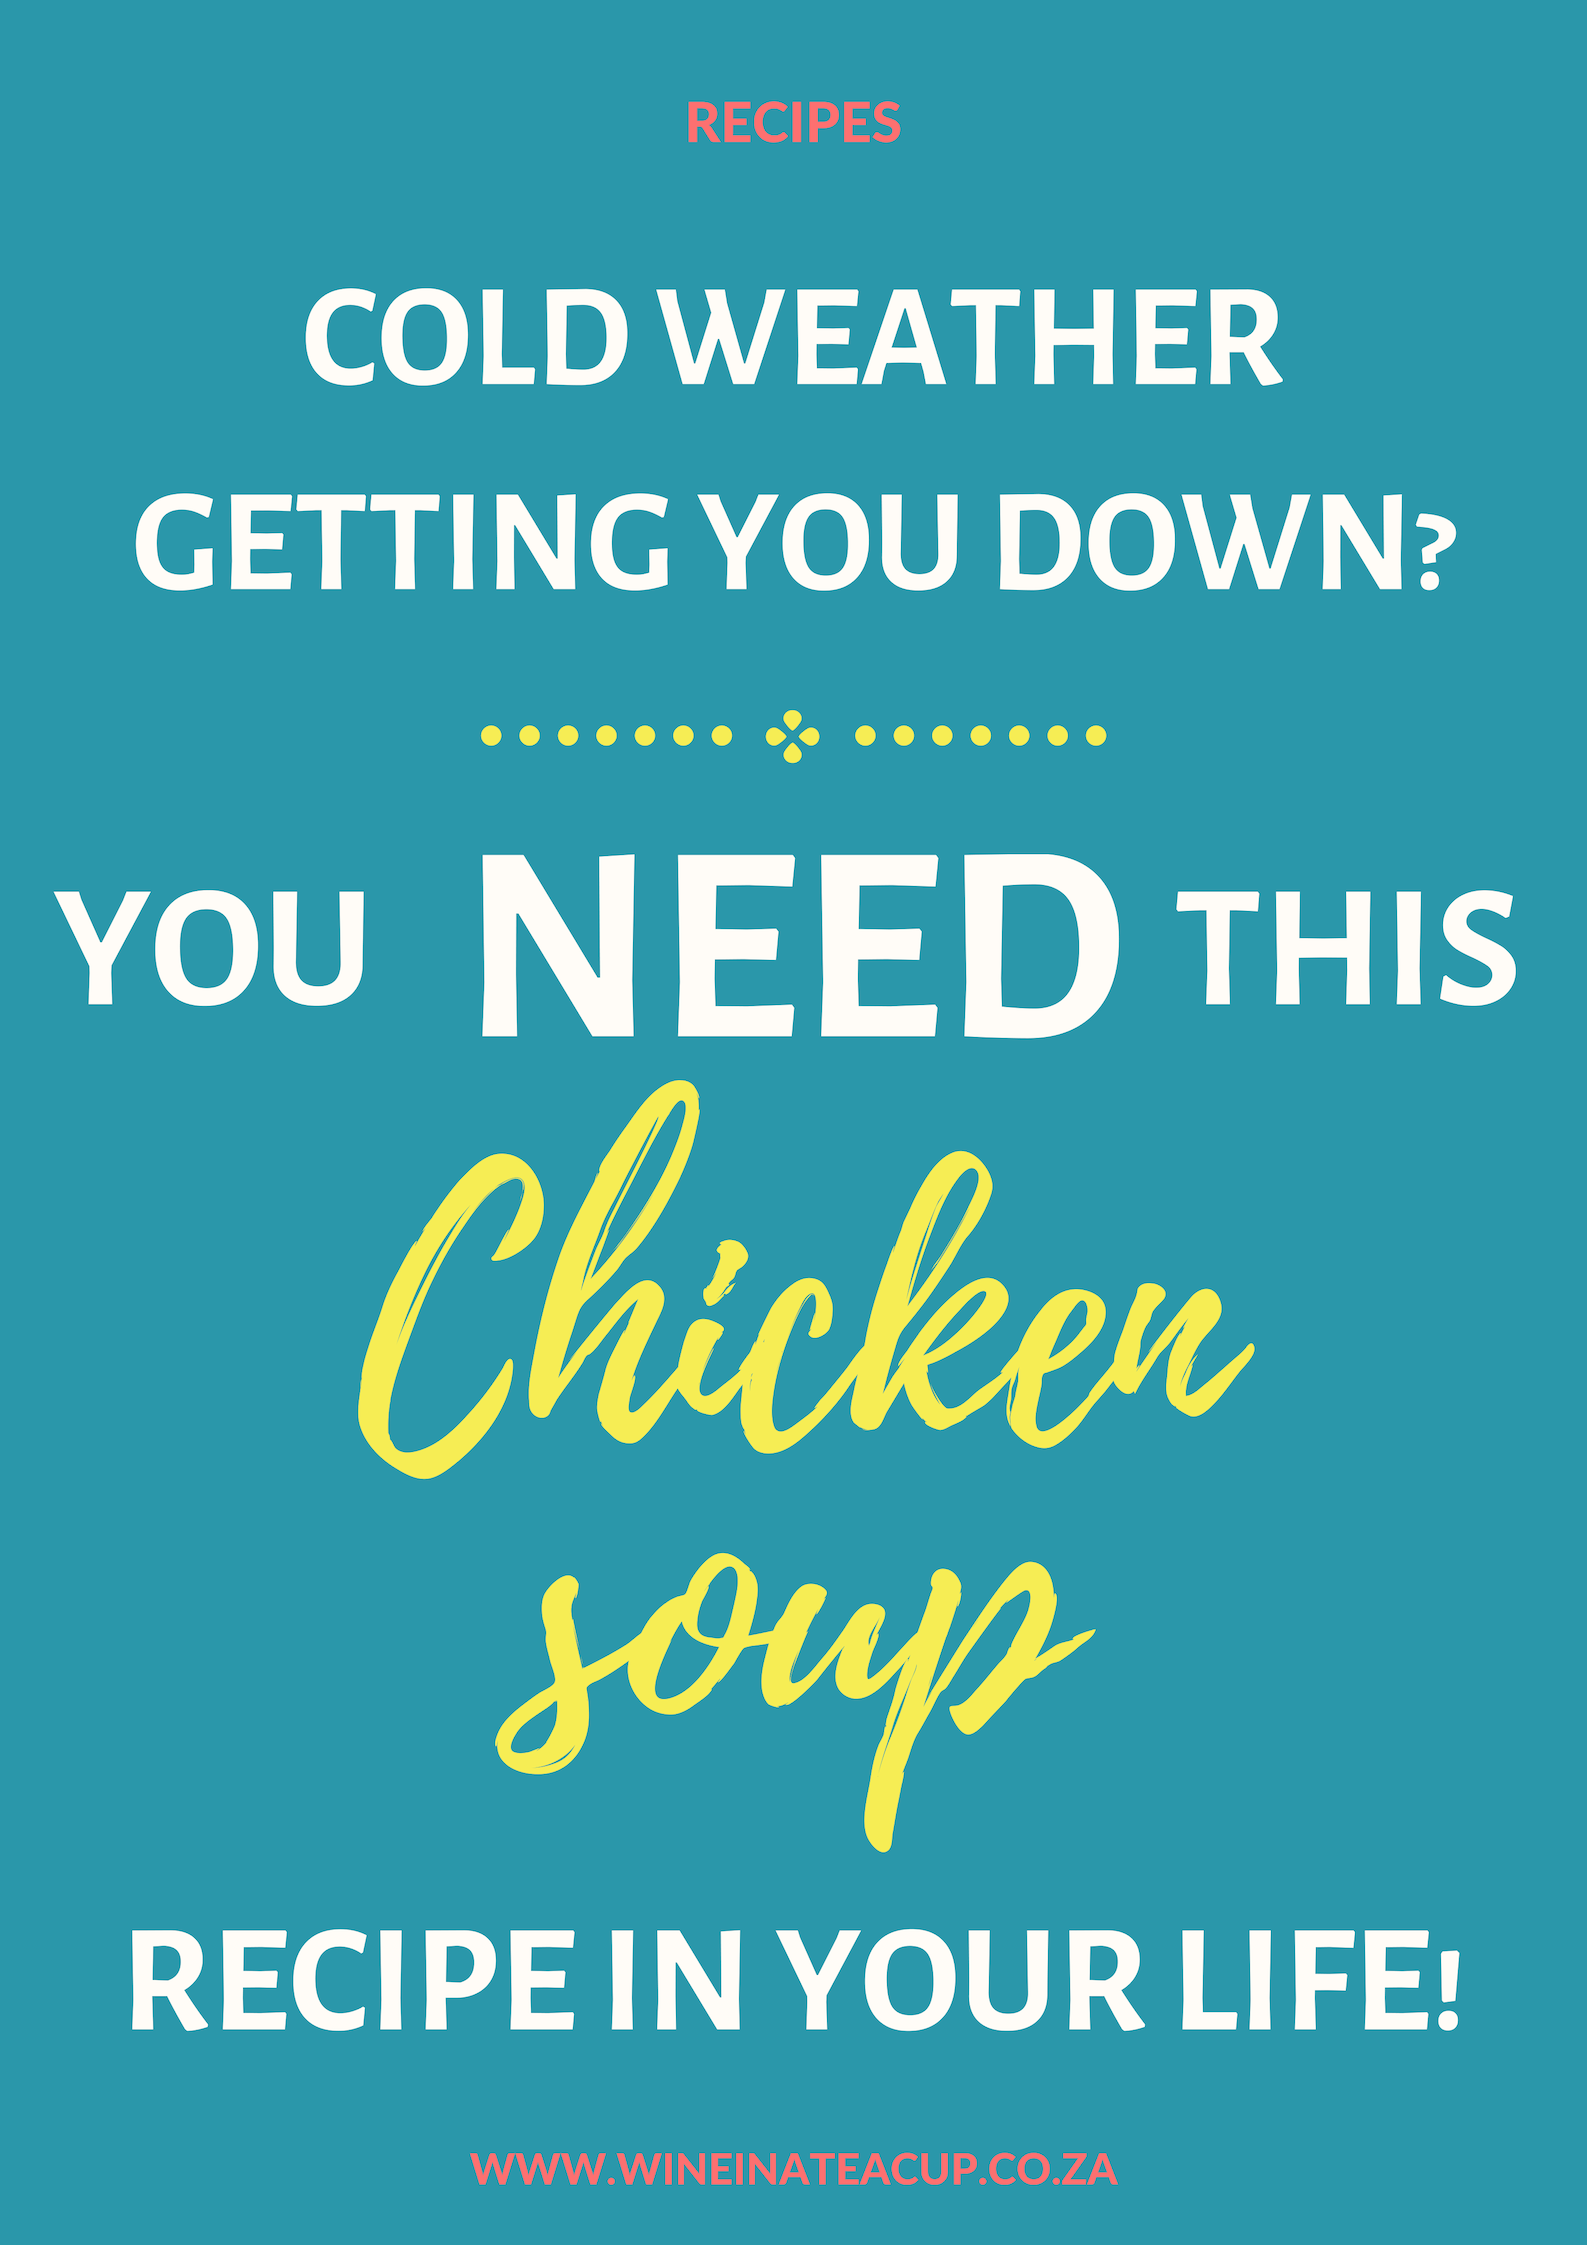 Super easy chicken soup recipe, part 2. If you are in need of a winter warmer recipe...look no further. This recipe has been in my family for years and is a trusted favourite for all of us. #soup #souprecipe #chickensoup #winterrecipes